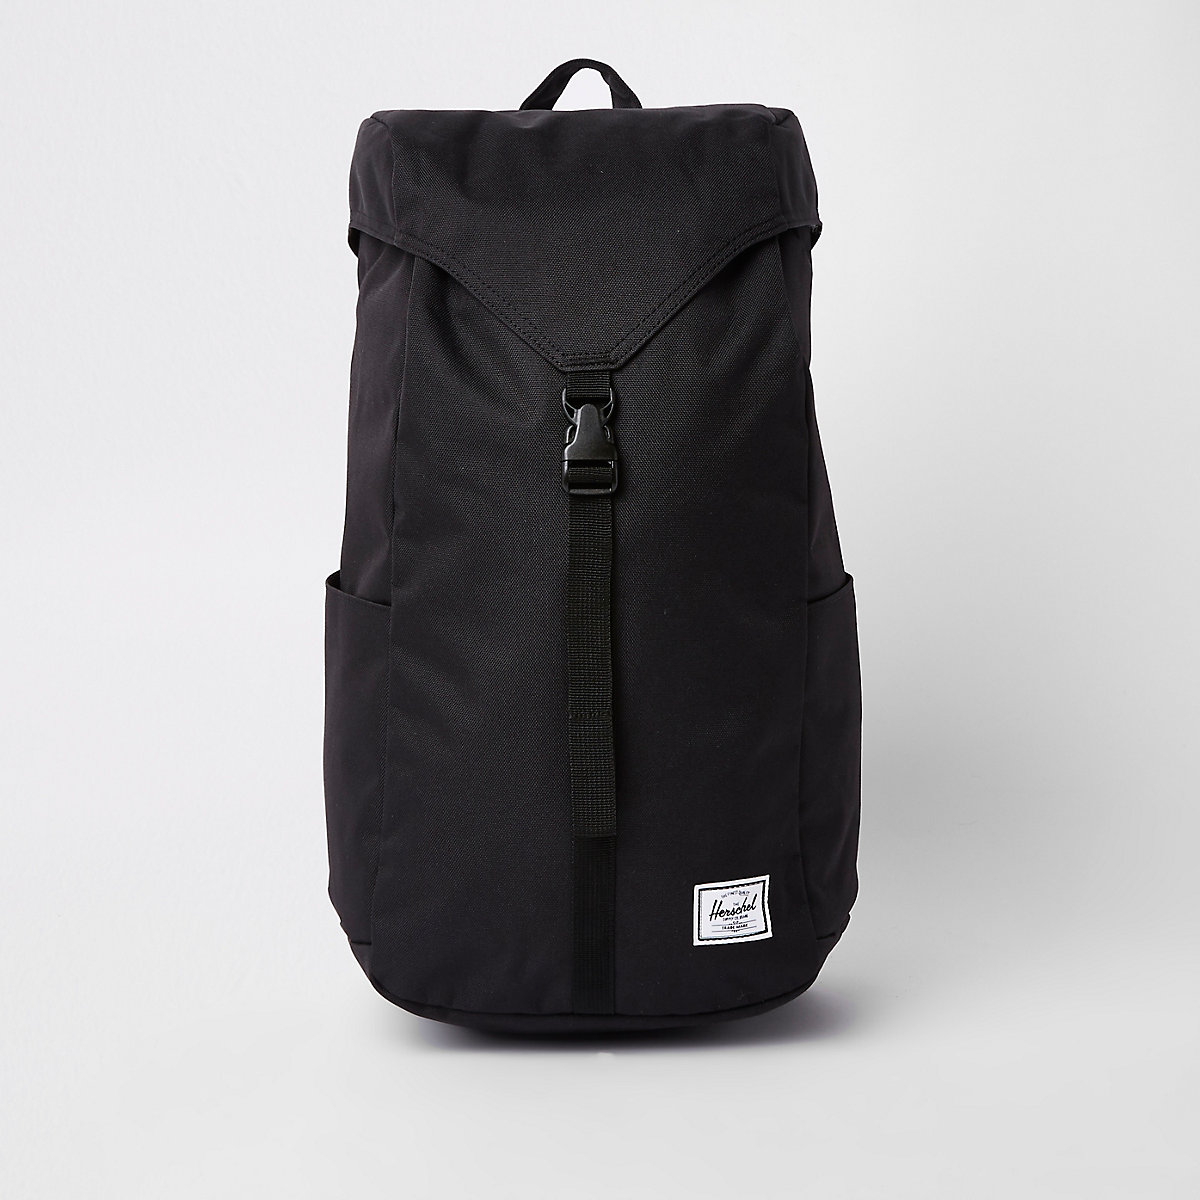 a70bd3a6212d Herschel black Thompson rucksack - Backpacks   Rucksacks - Bags - men